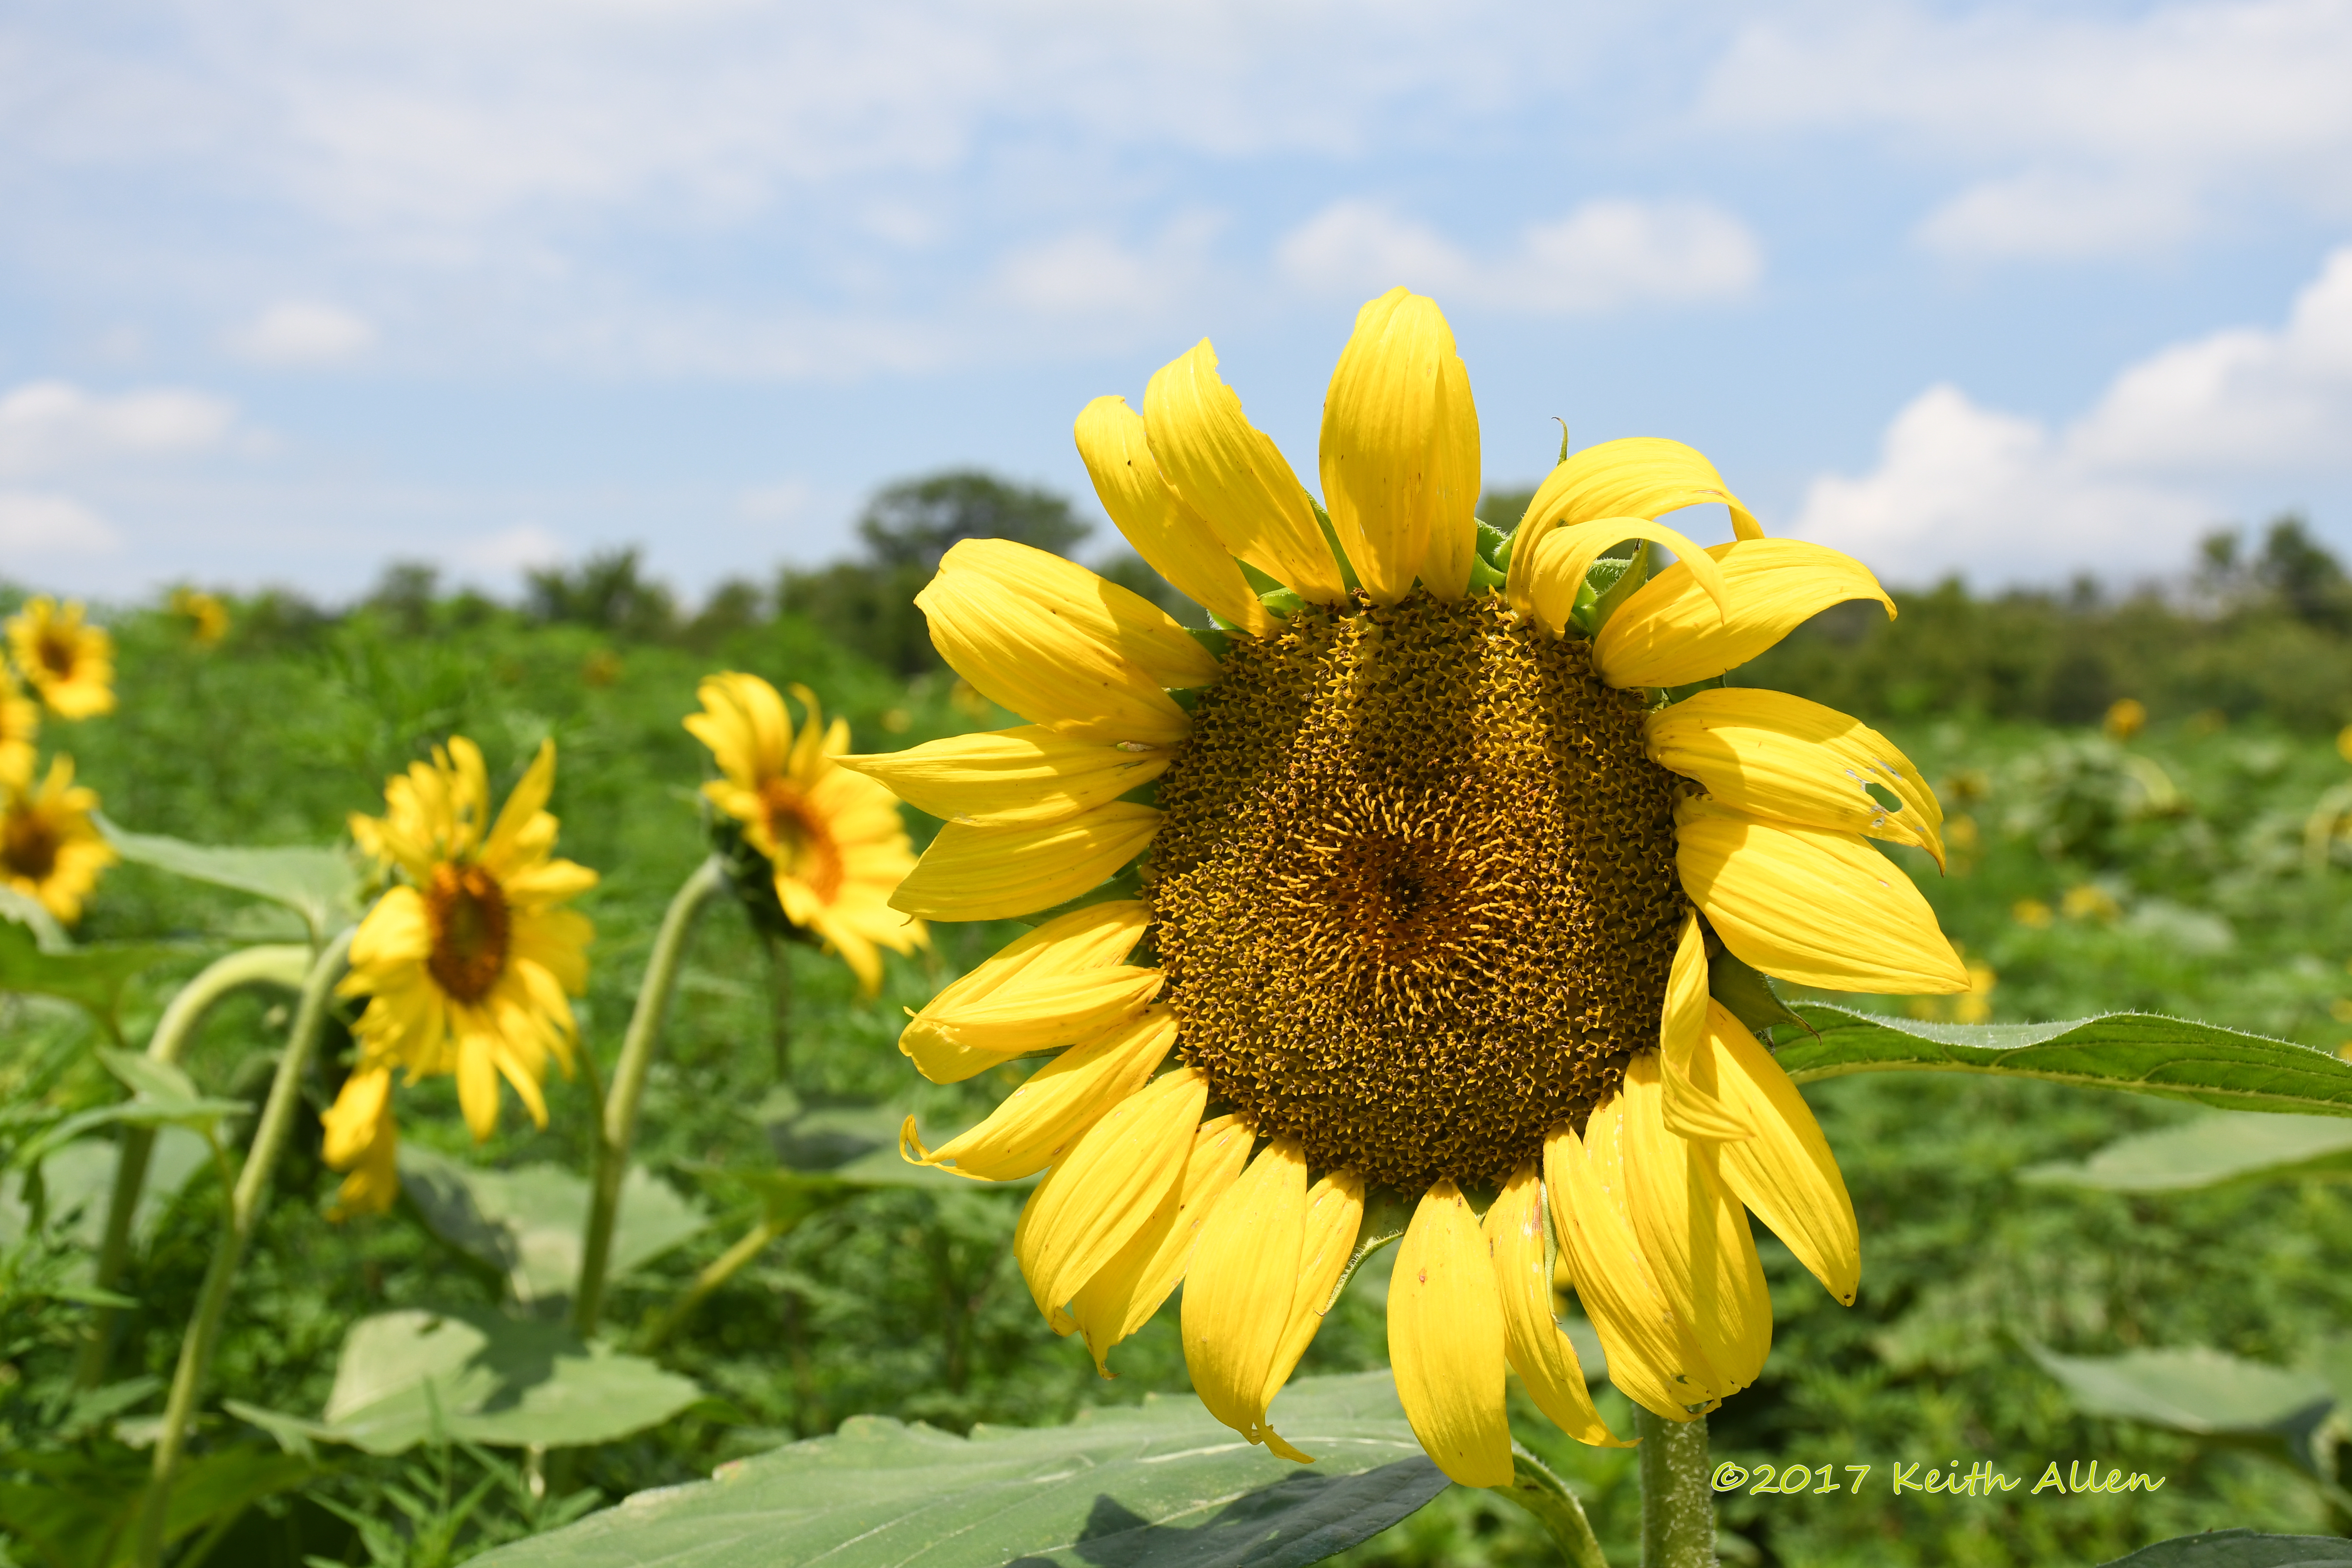 sunflowers in a field author allen keith sunflow